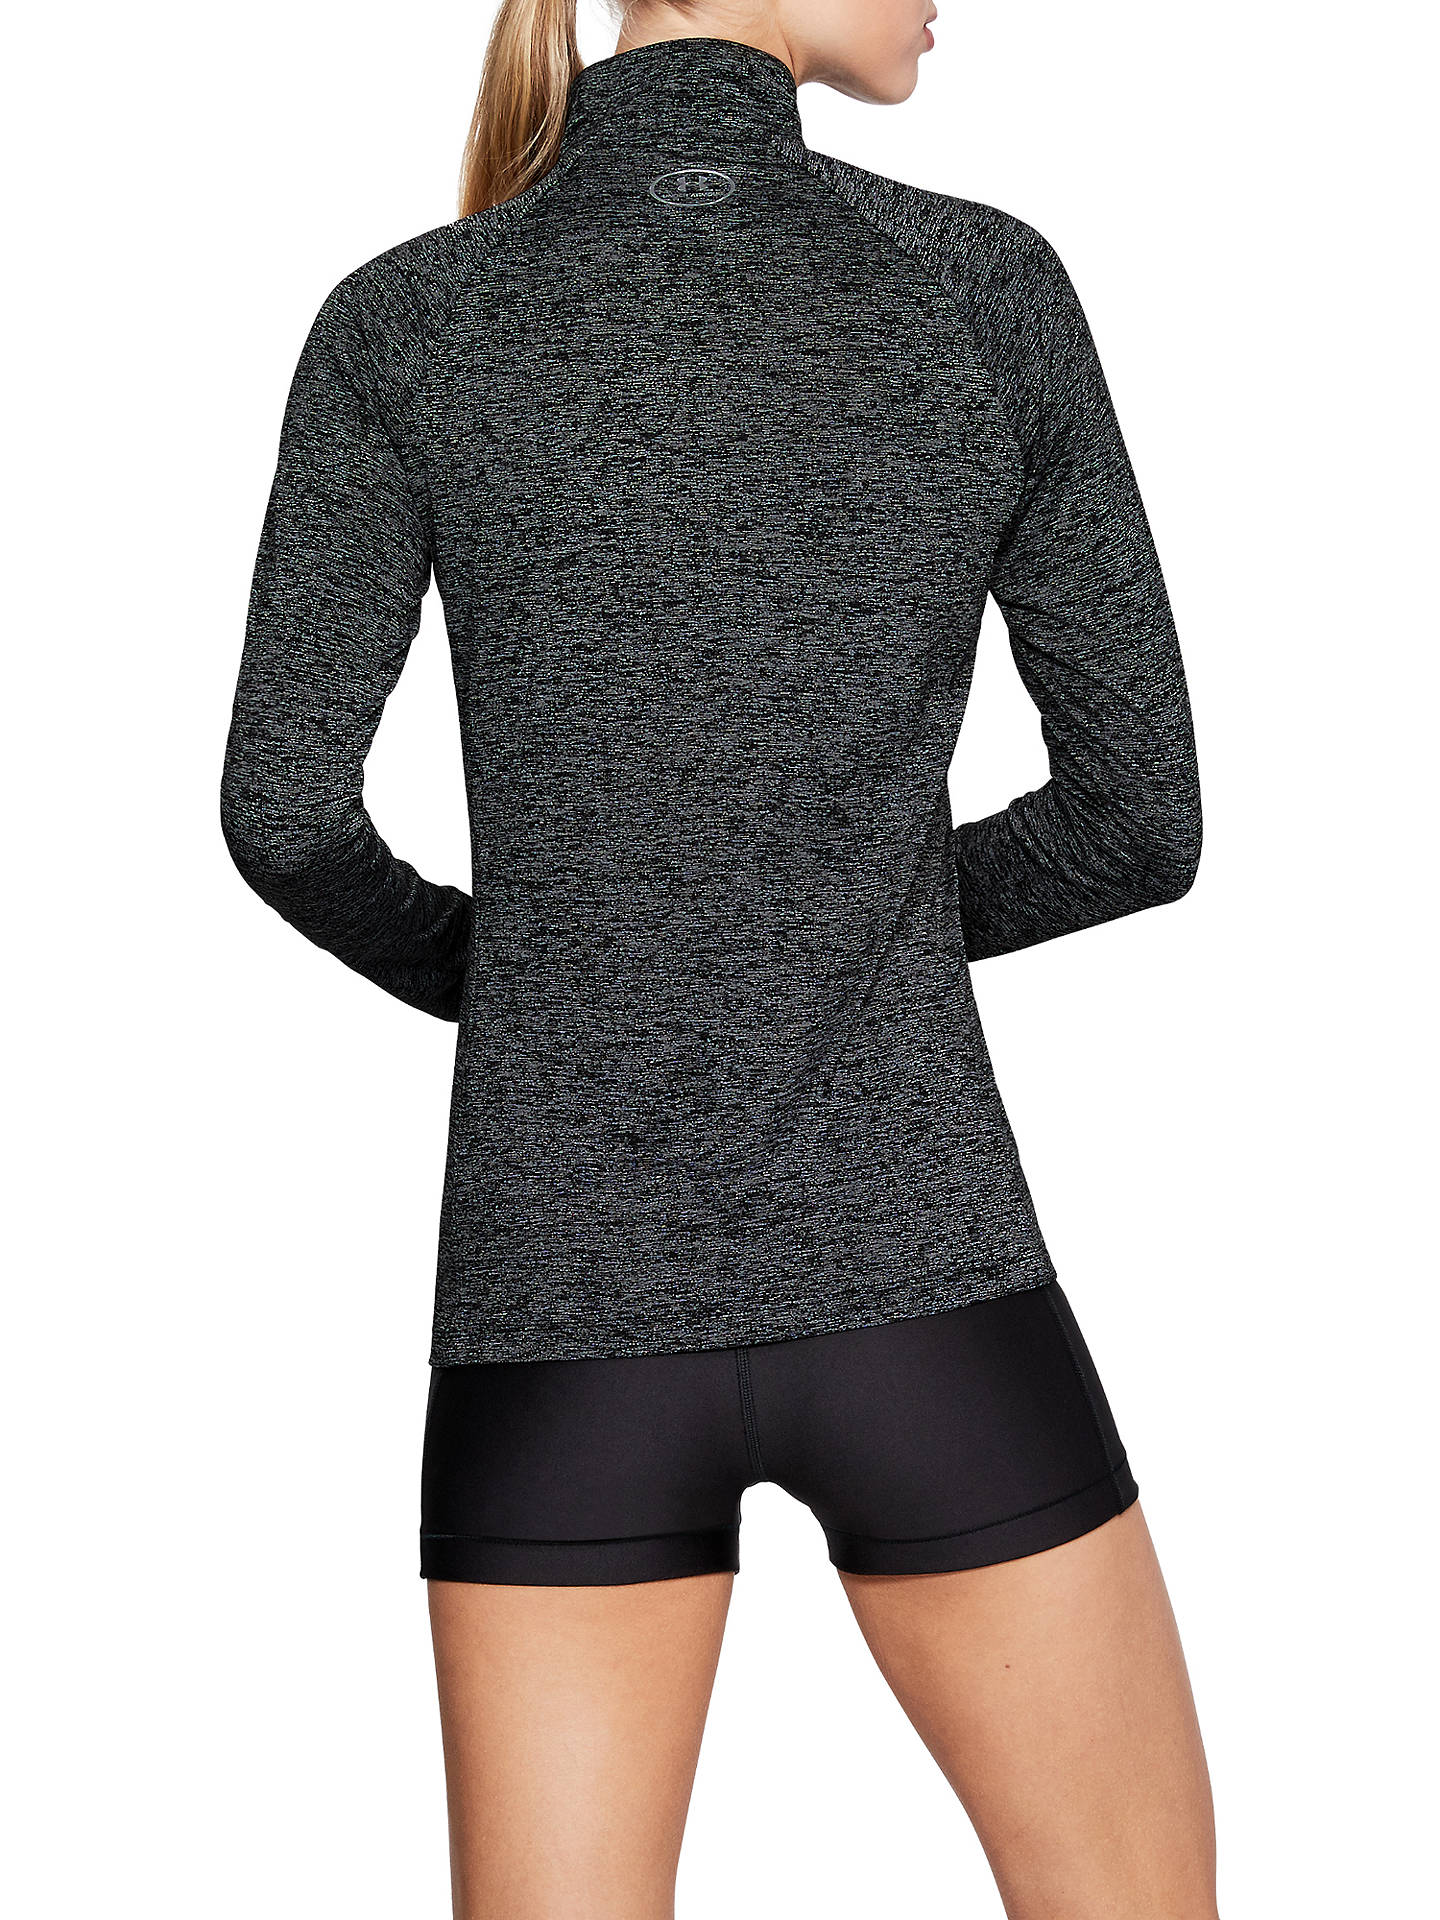 Buy Under Armour Tech 1/2 Zip Twist Long Sleeve Training Top, Charcoal/Metallic Silver, M Online at johnlewis.com